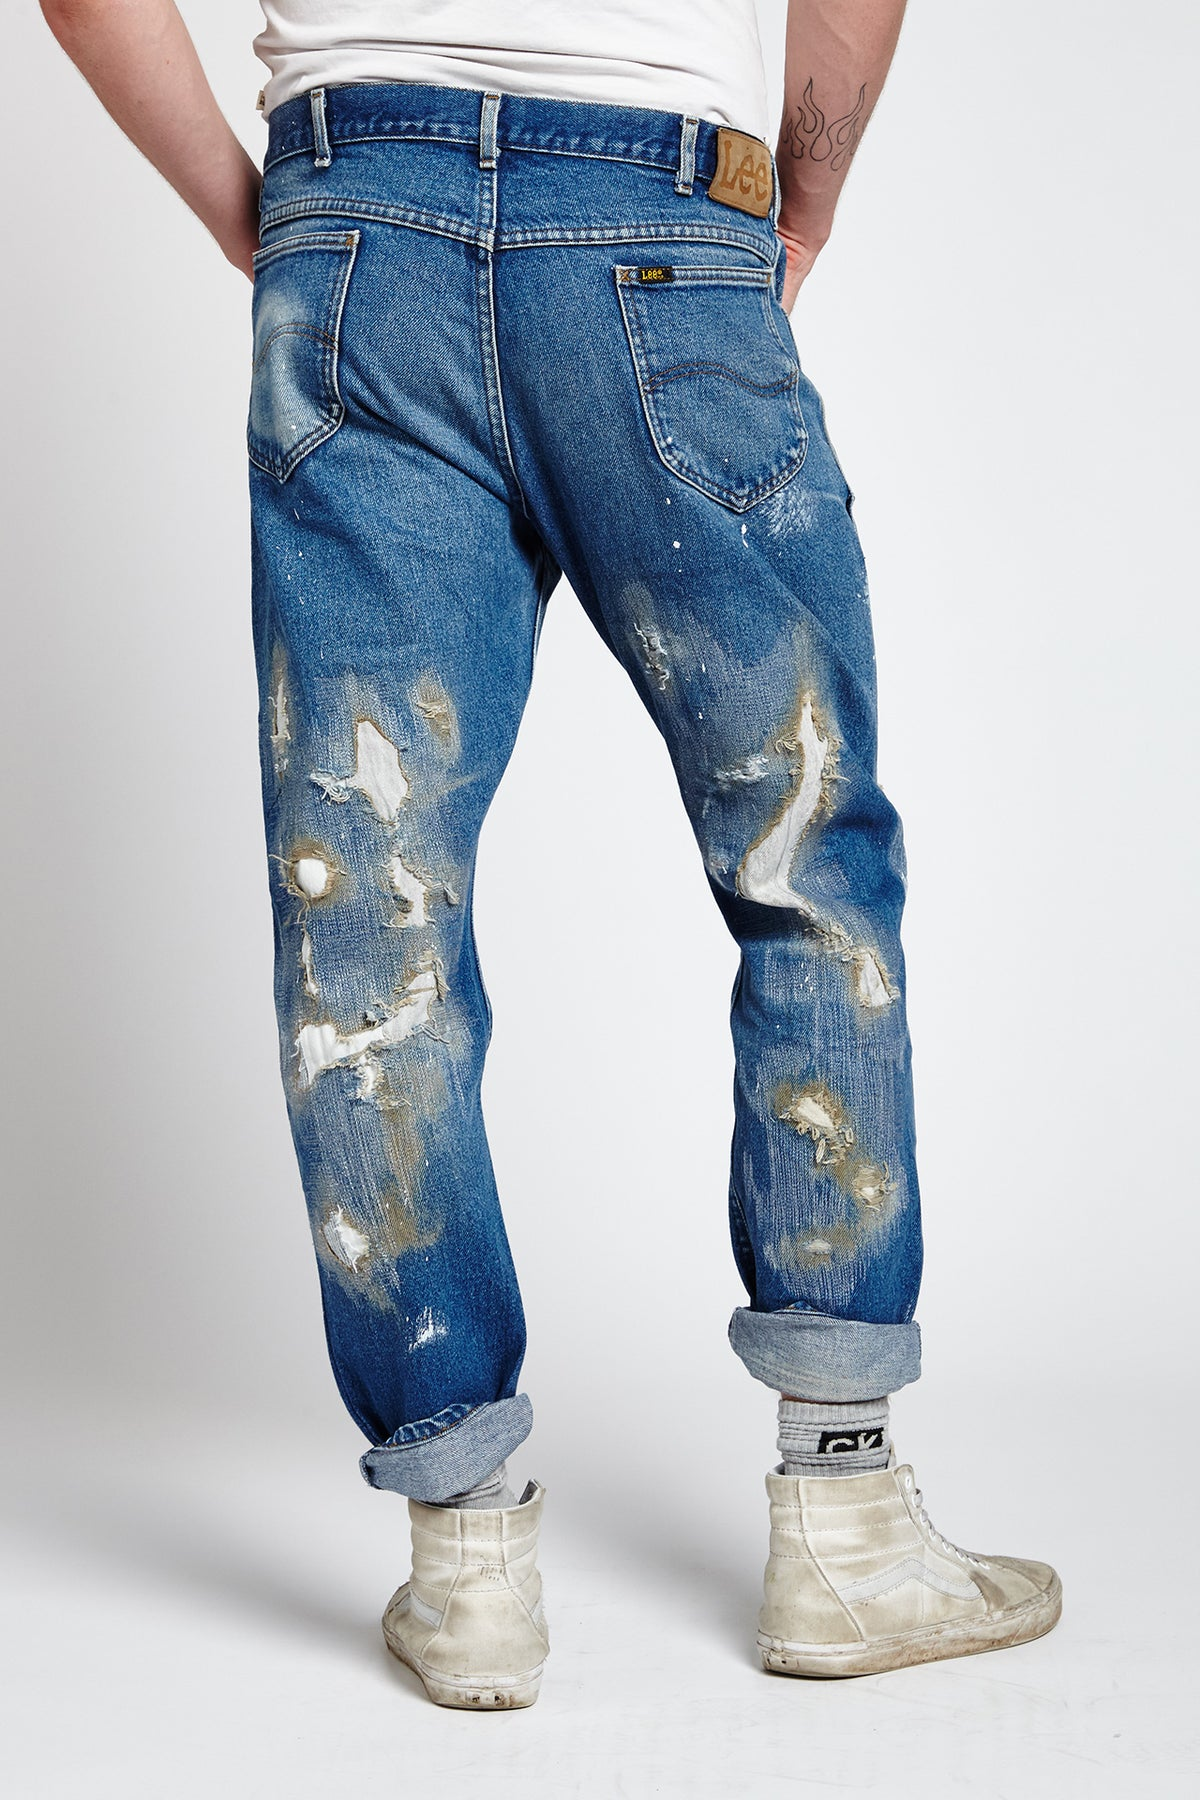 MILLIE RIGHE DISTRESSED COTTON BLUE 38 W JEANS-BOTTOMS-Mundane Official-38-BLUE-Mundane Official